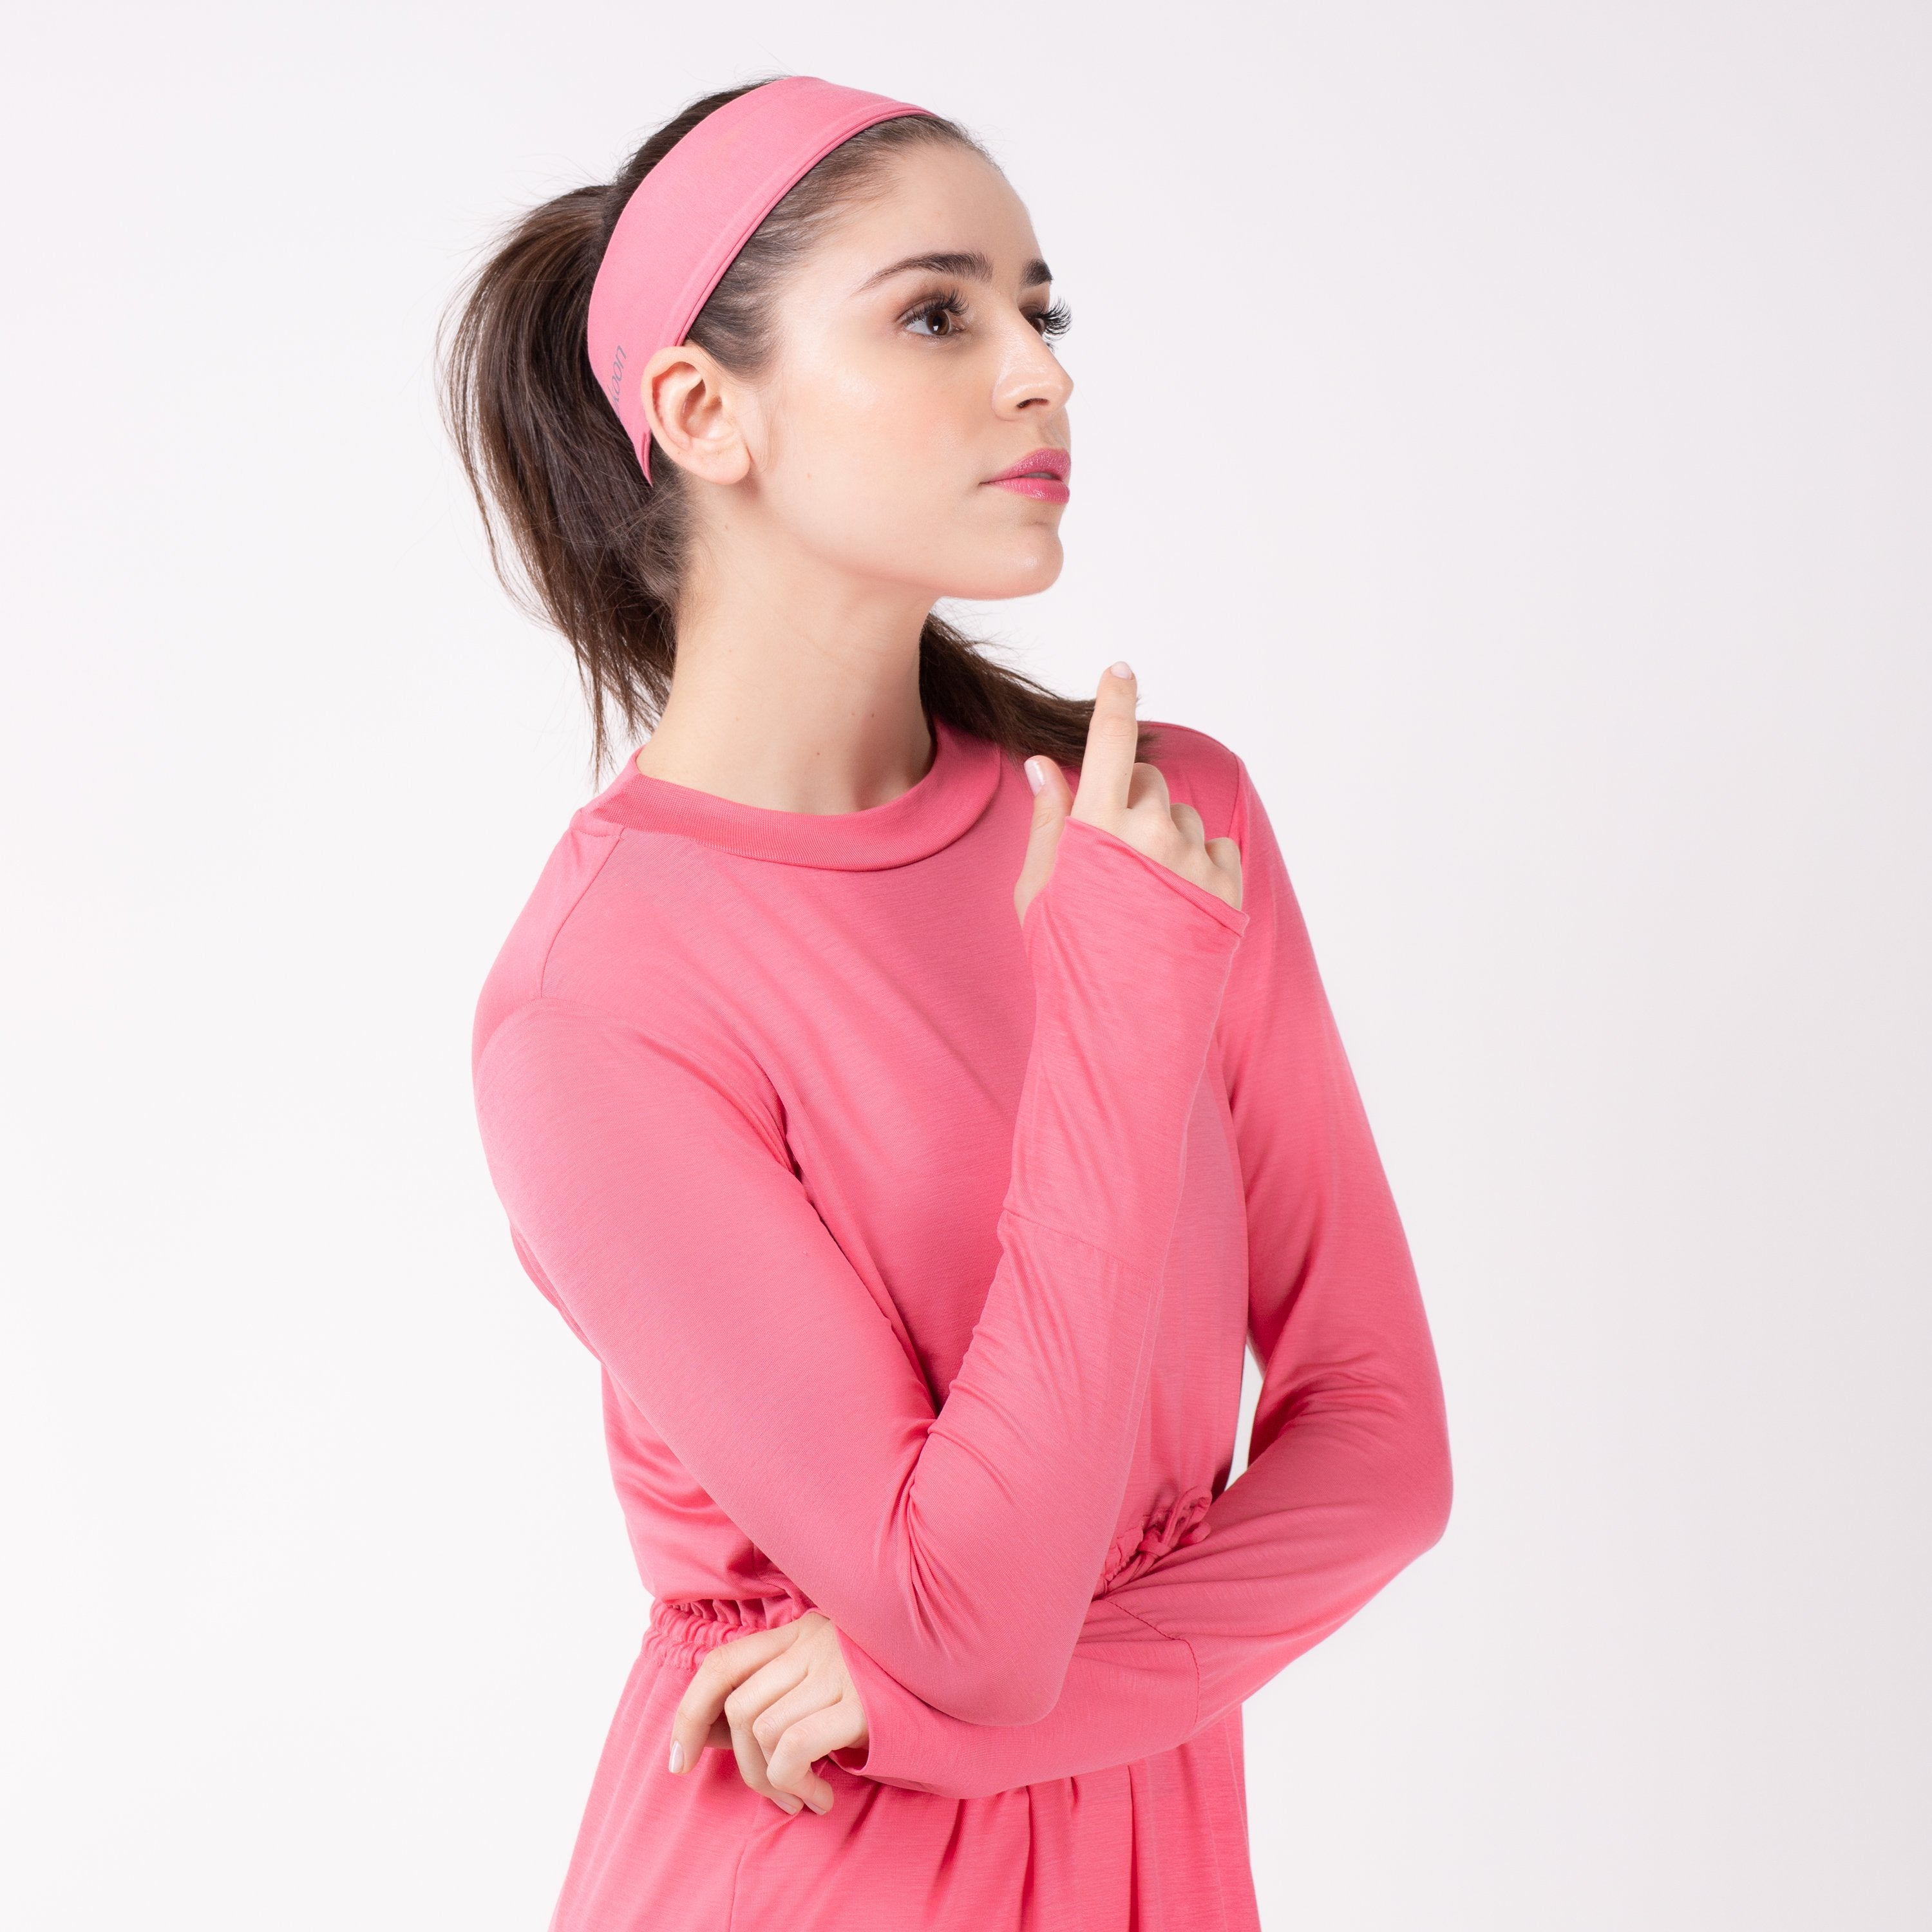 Woman looking right in pink shirt with matching pink HAWA headband.